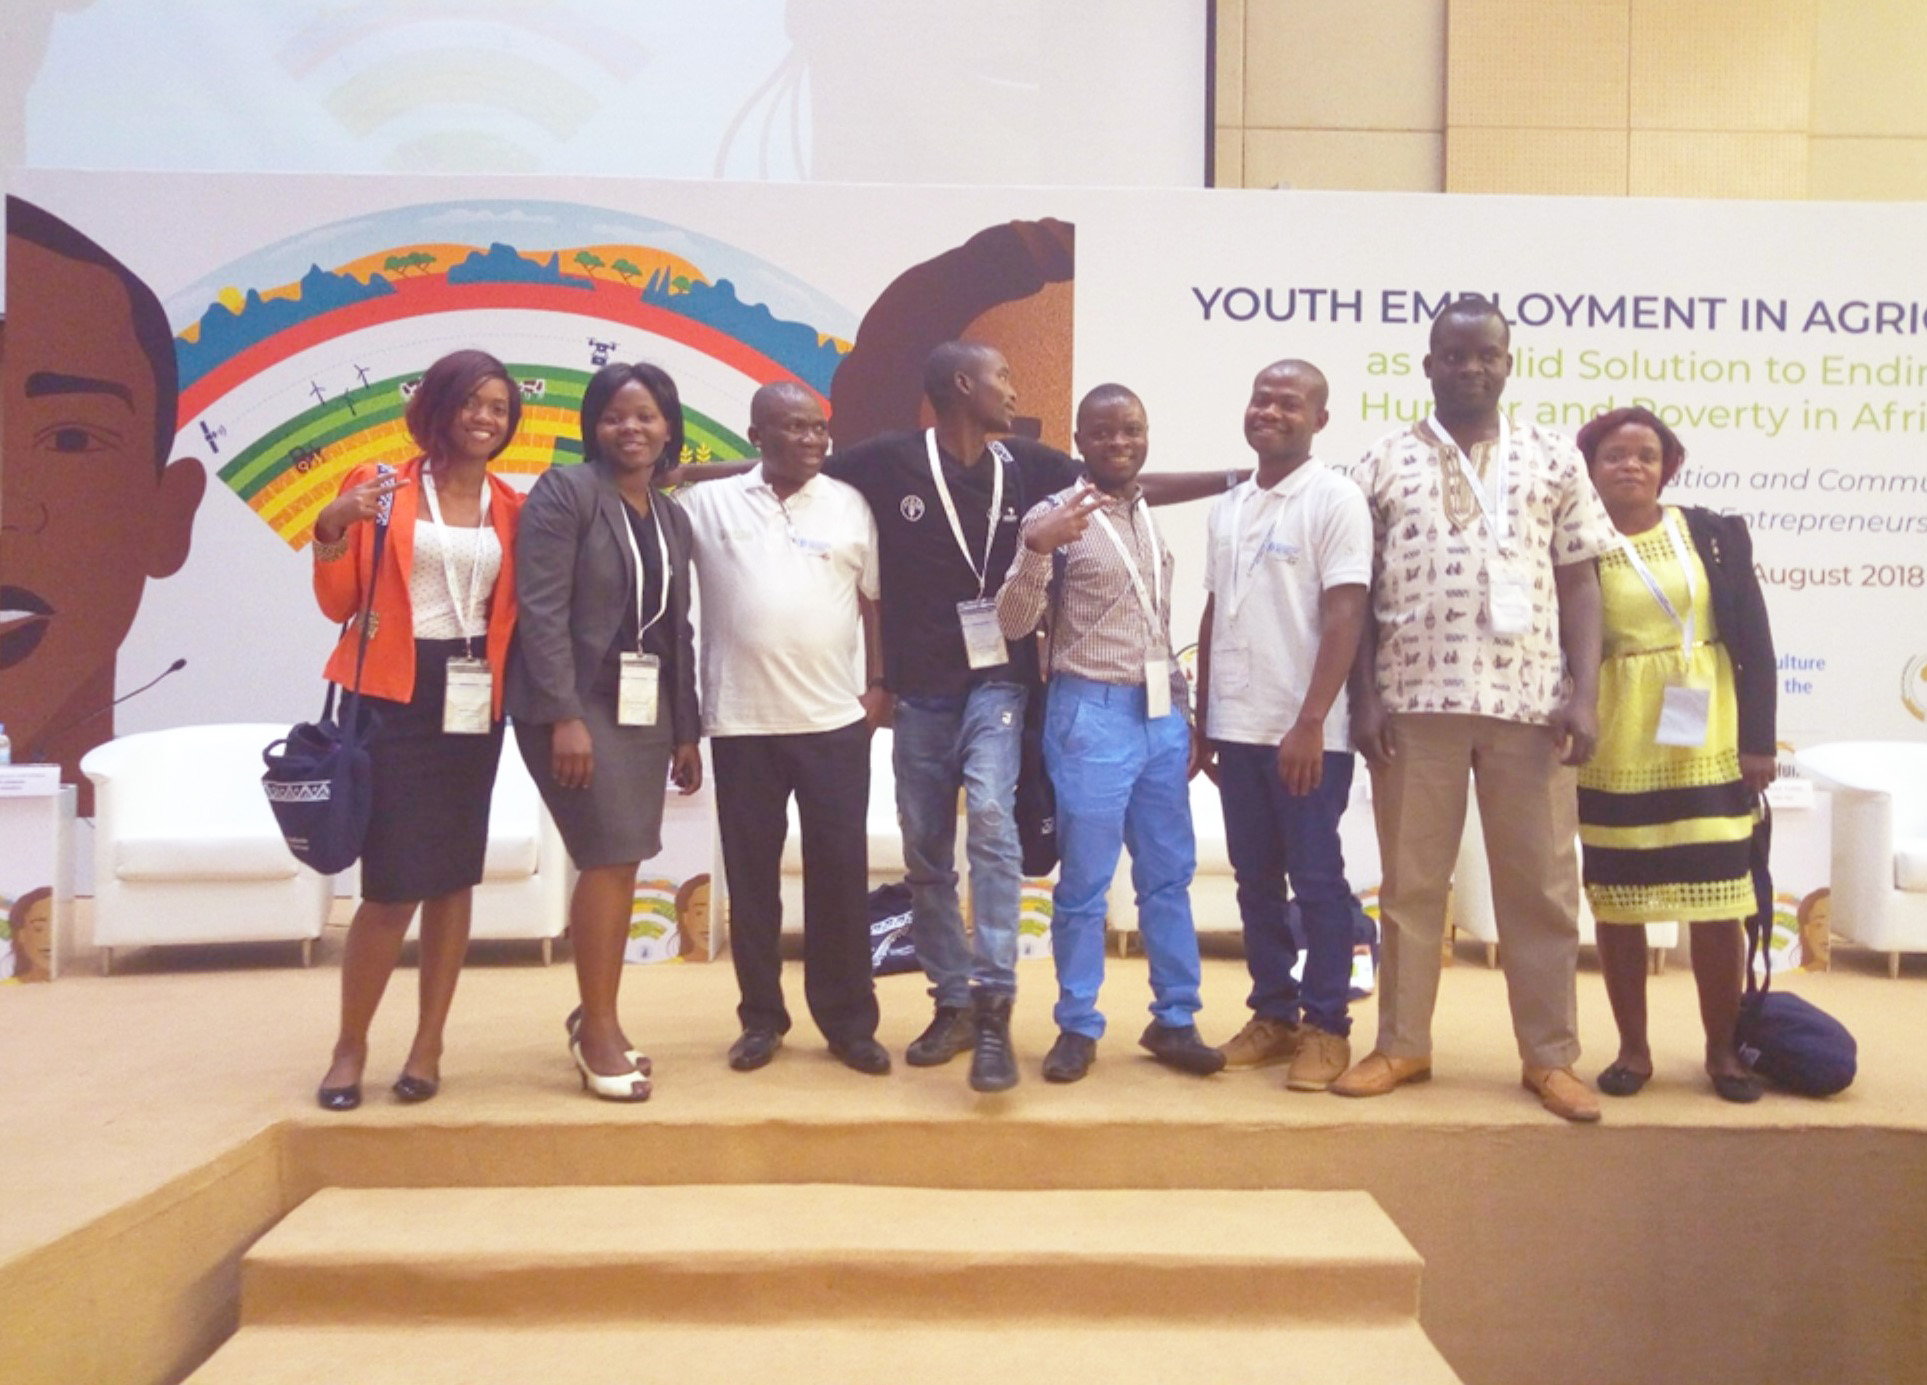 AICC through Legume Platform attended Youth employment in Agriculture